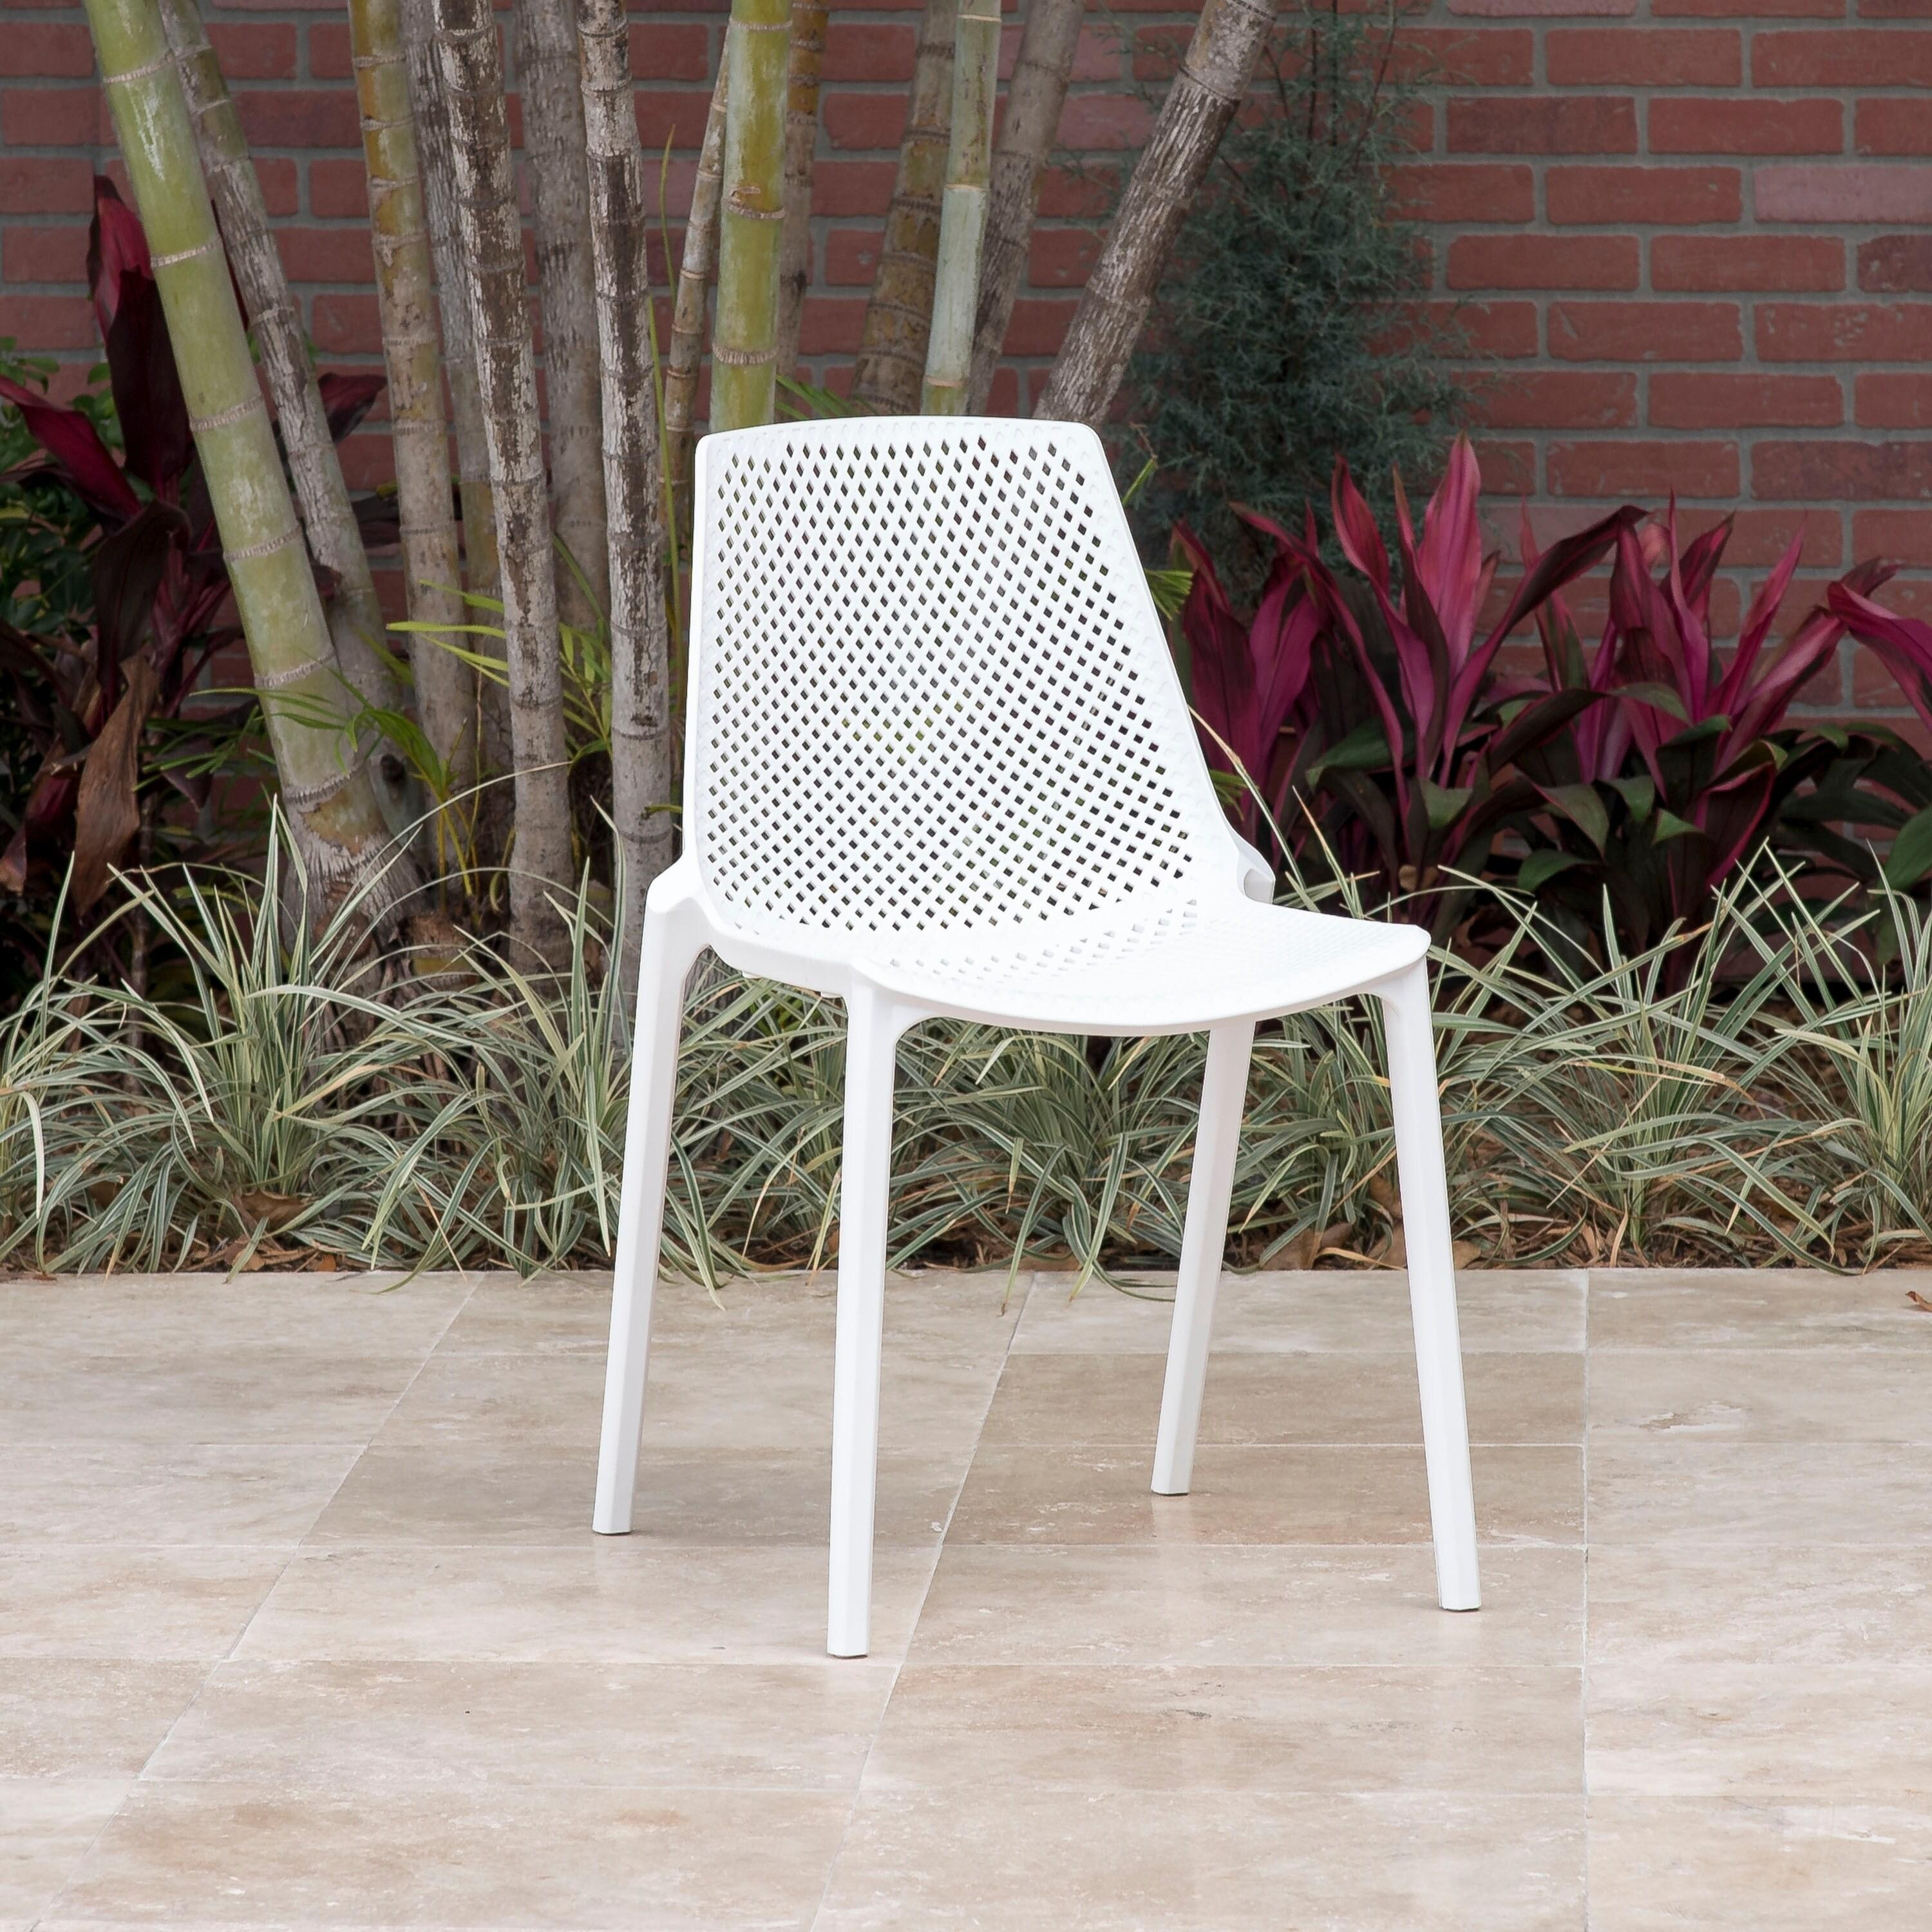 Perce White 9-piece Rectangular Side Chair Patio Dining Set by Havenside Home